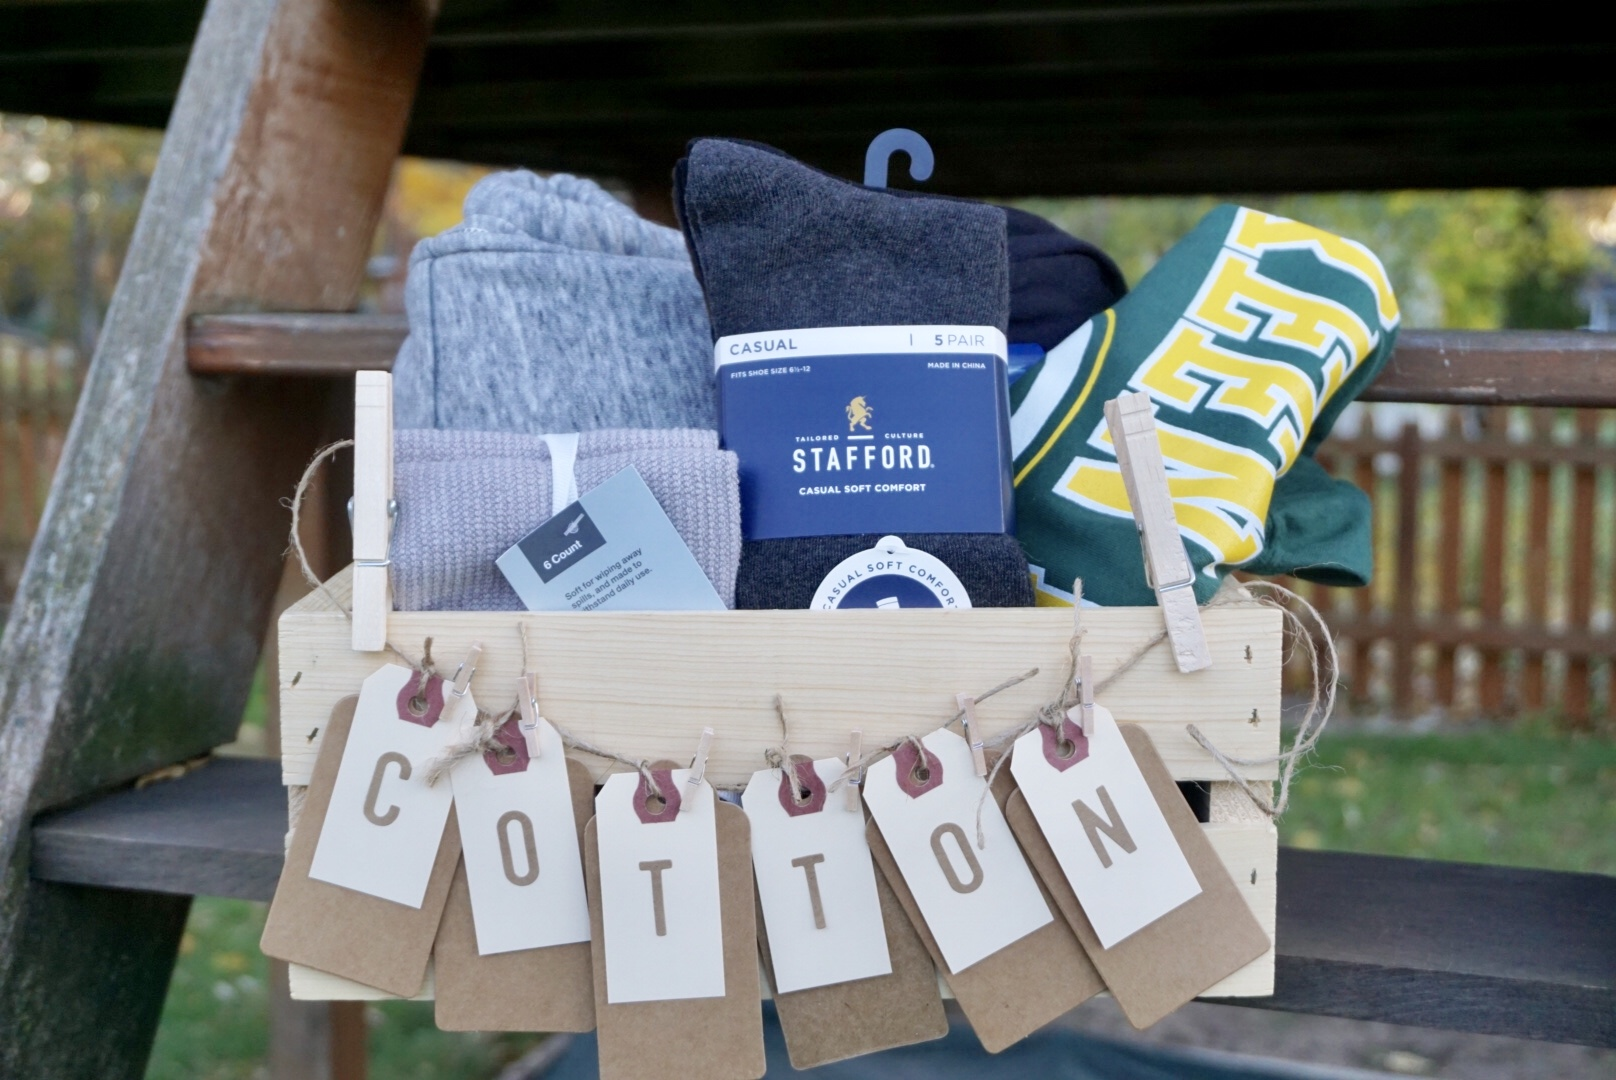 DIY Cotton 2nd Anniversary Gift Basket for your husband. Full of cotton goodies like t-shirts, socks, sweatshirt, dish cloths, and more! Click here to learn how to re-create for your own special day. #anniversarygift #secondyearofmarriage #diygiftbasket #giftbasketideas